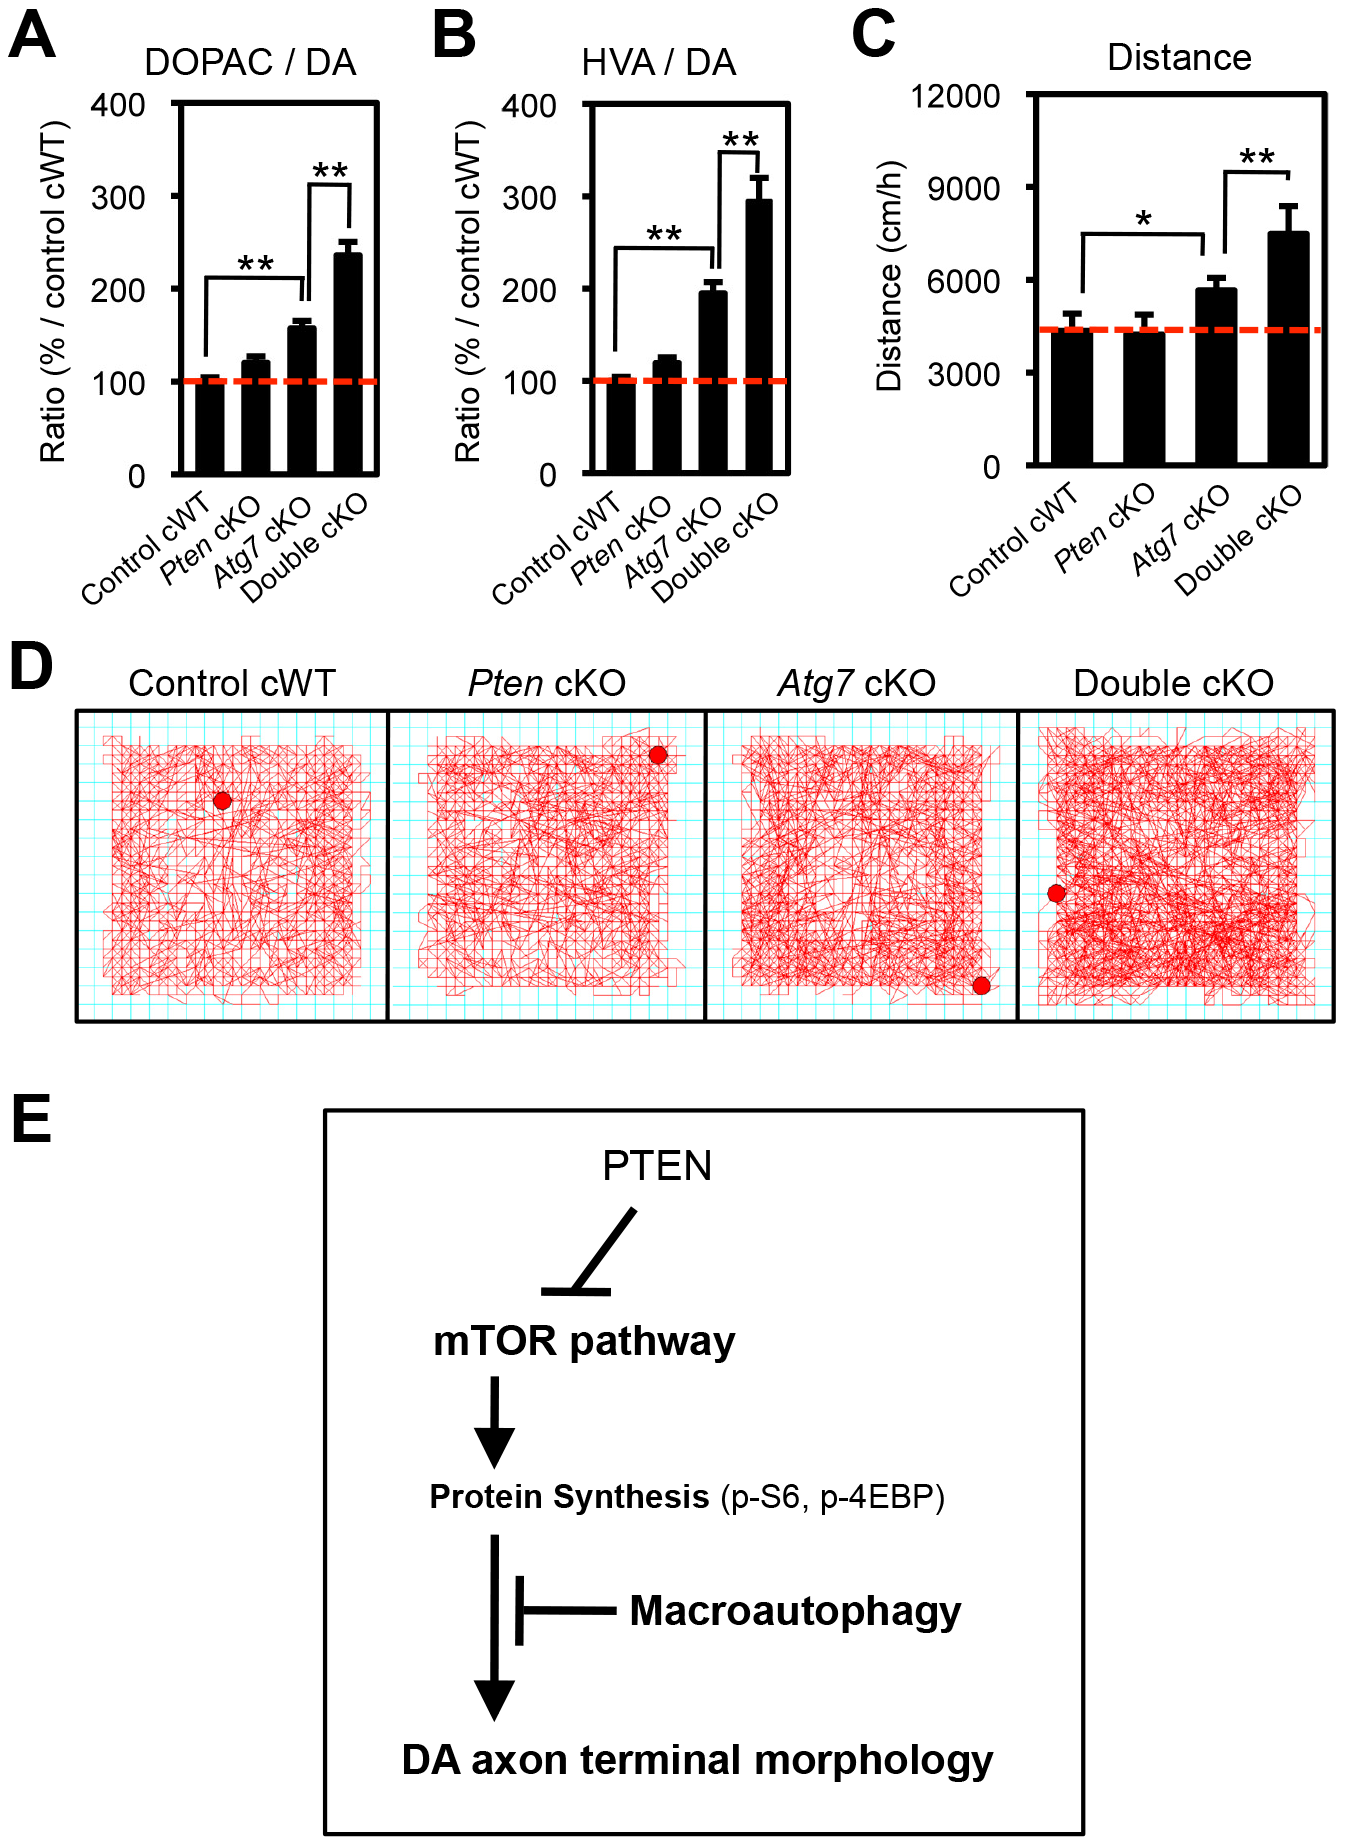 Atg7 and Pten double deficiency synergistically increases DA turnover and DA-associated behaviors.